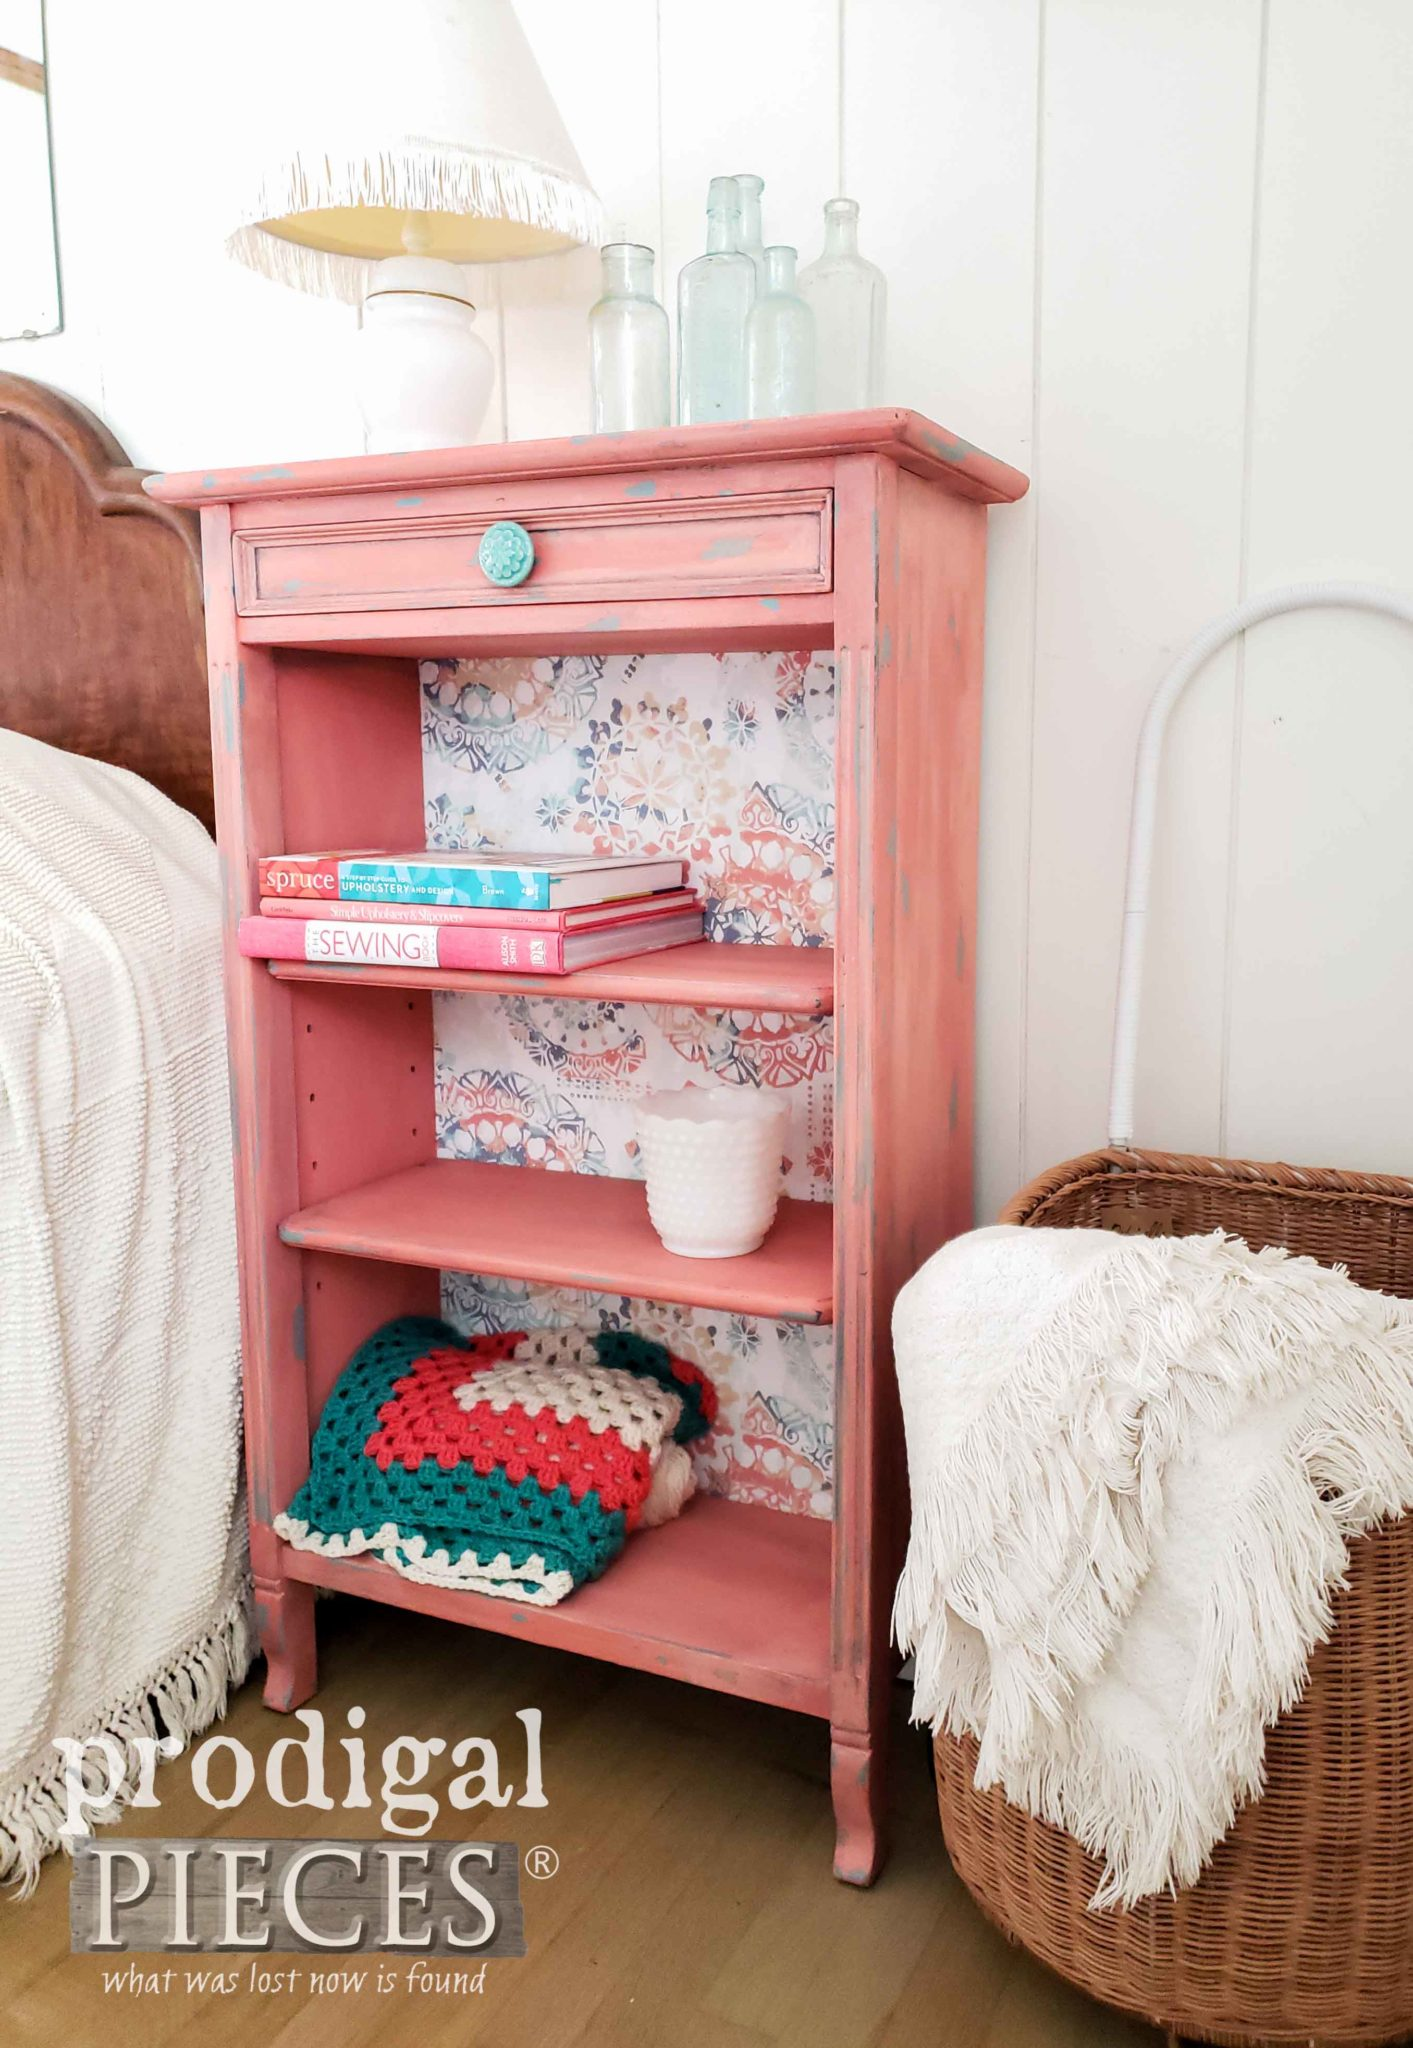 Vintage Bookcase in a Coral Color with Teal Accents by Larissa of Prodigal Pieces | prodigalpieces.com